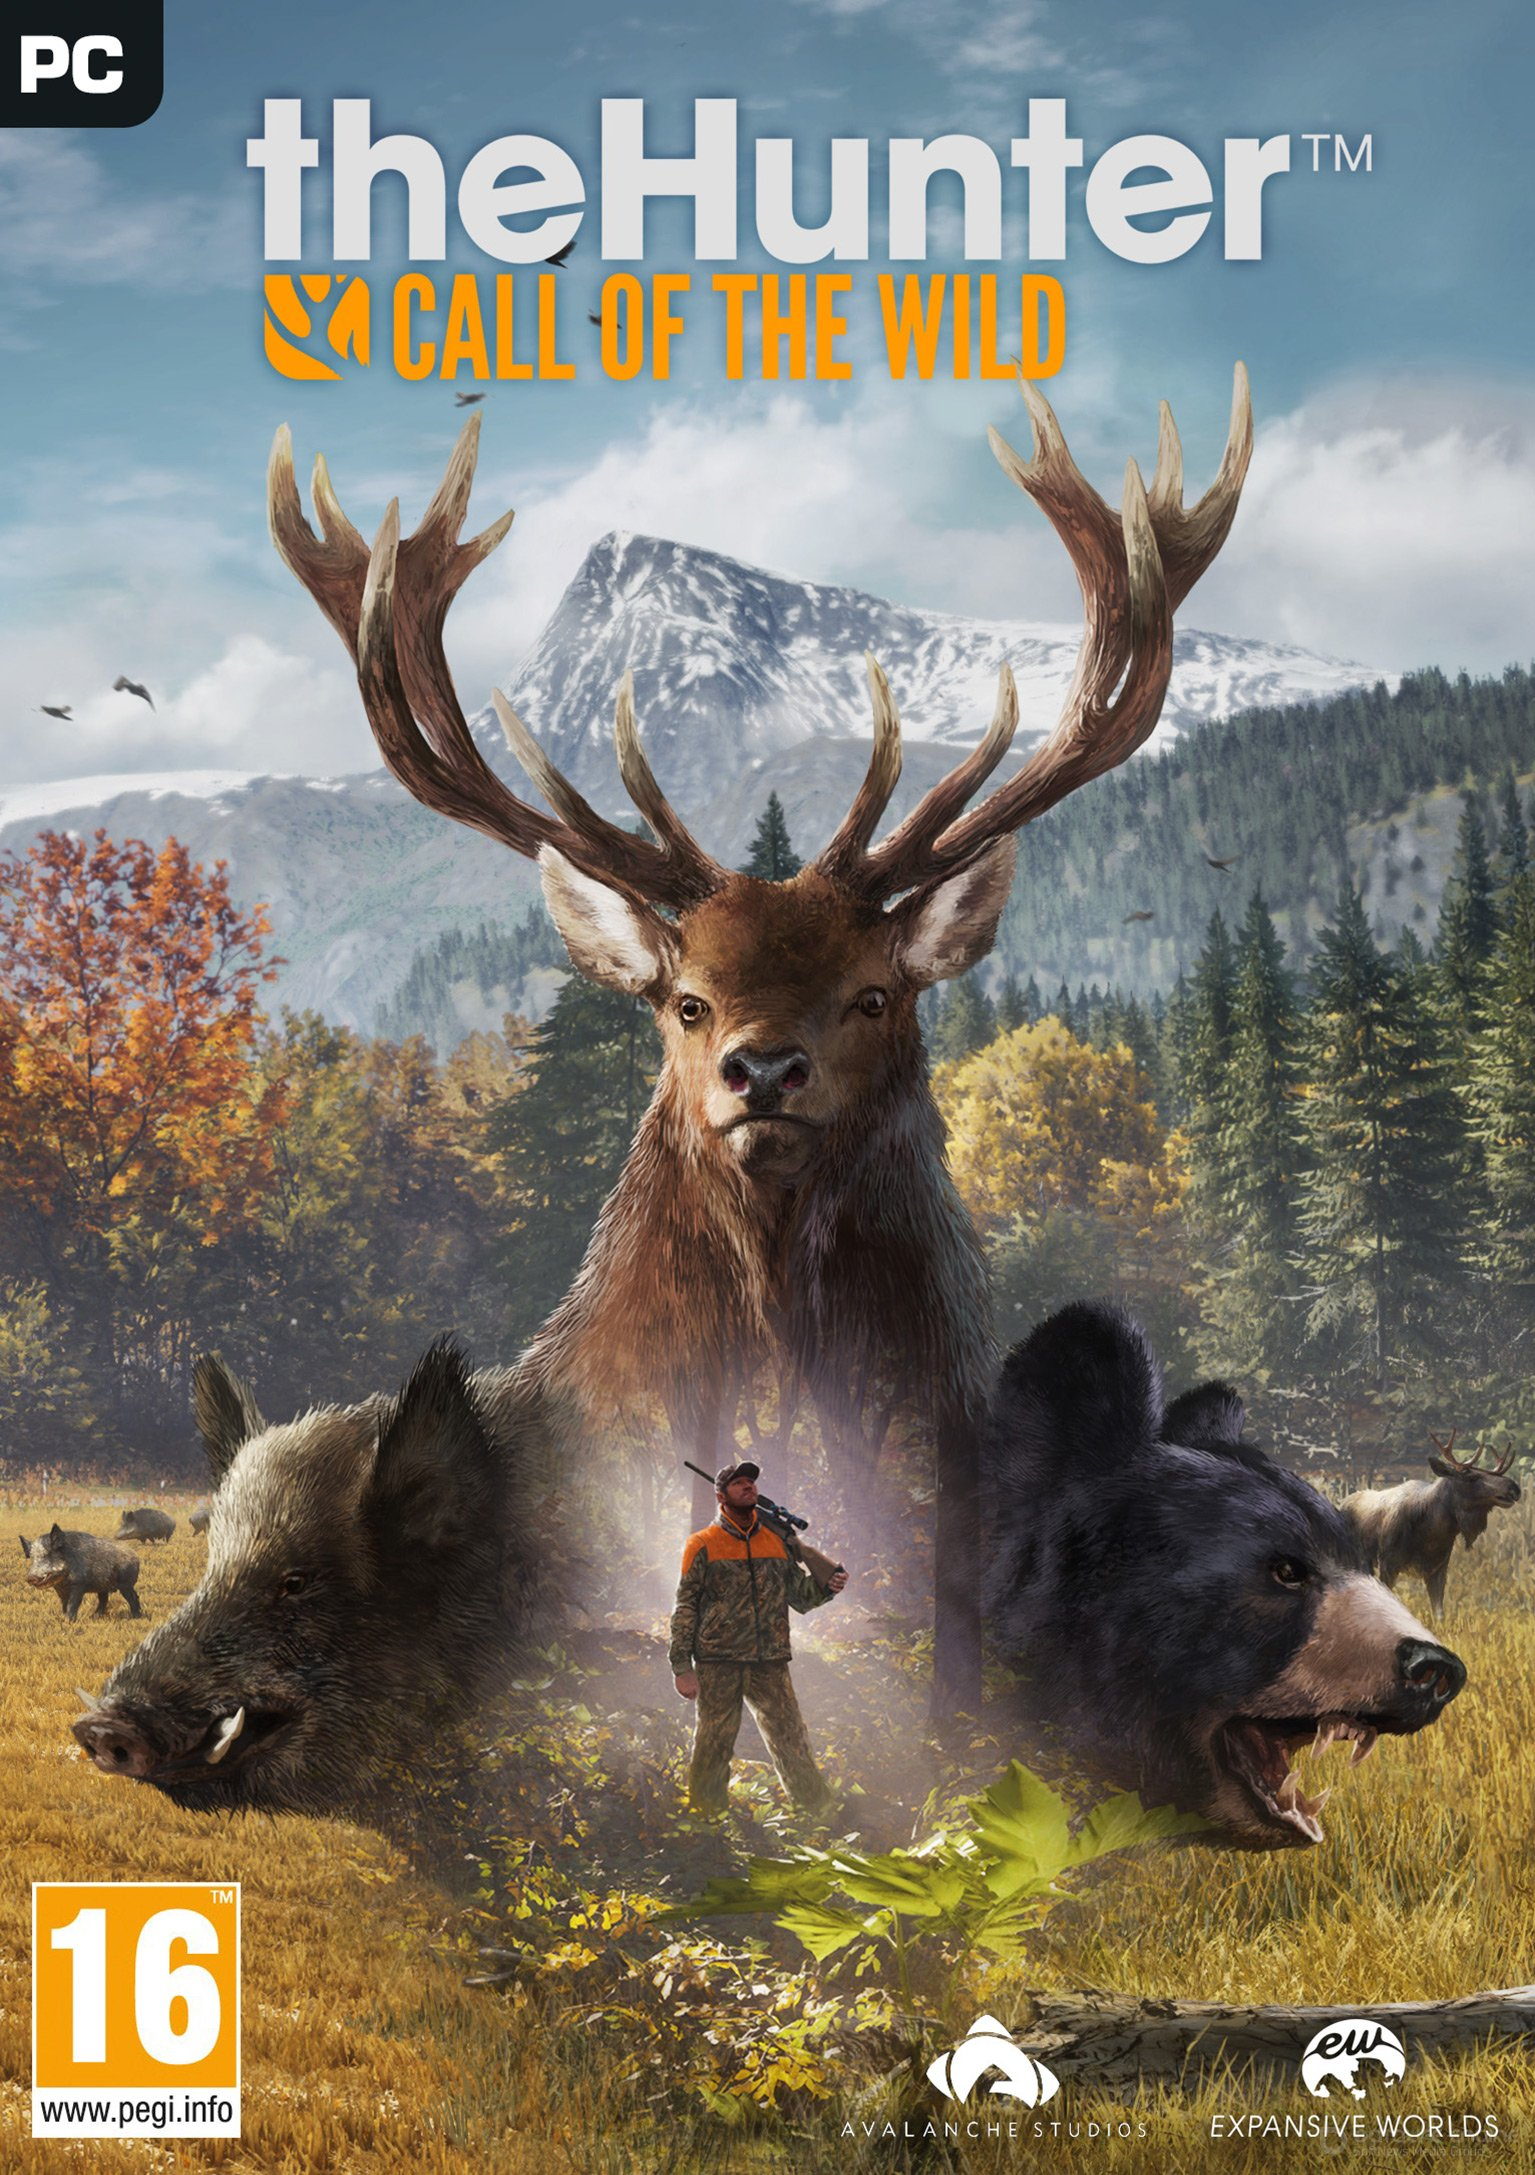 TheHunter: Call of the Wild [v1939208 +DLC]